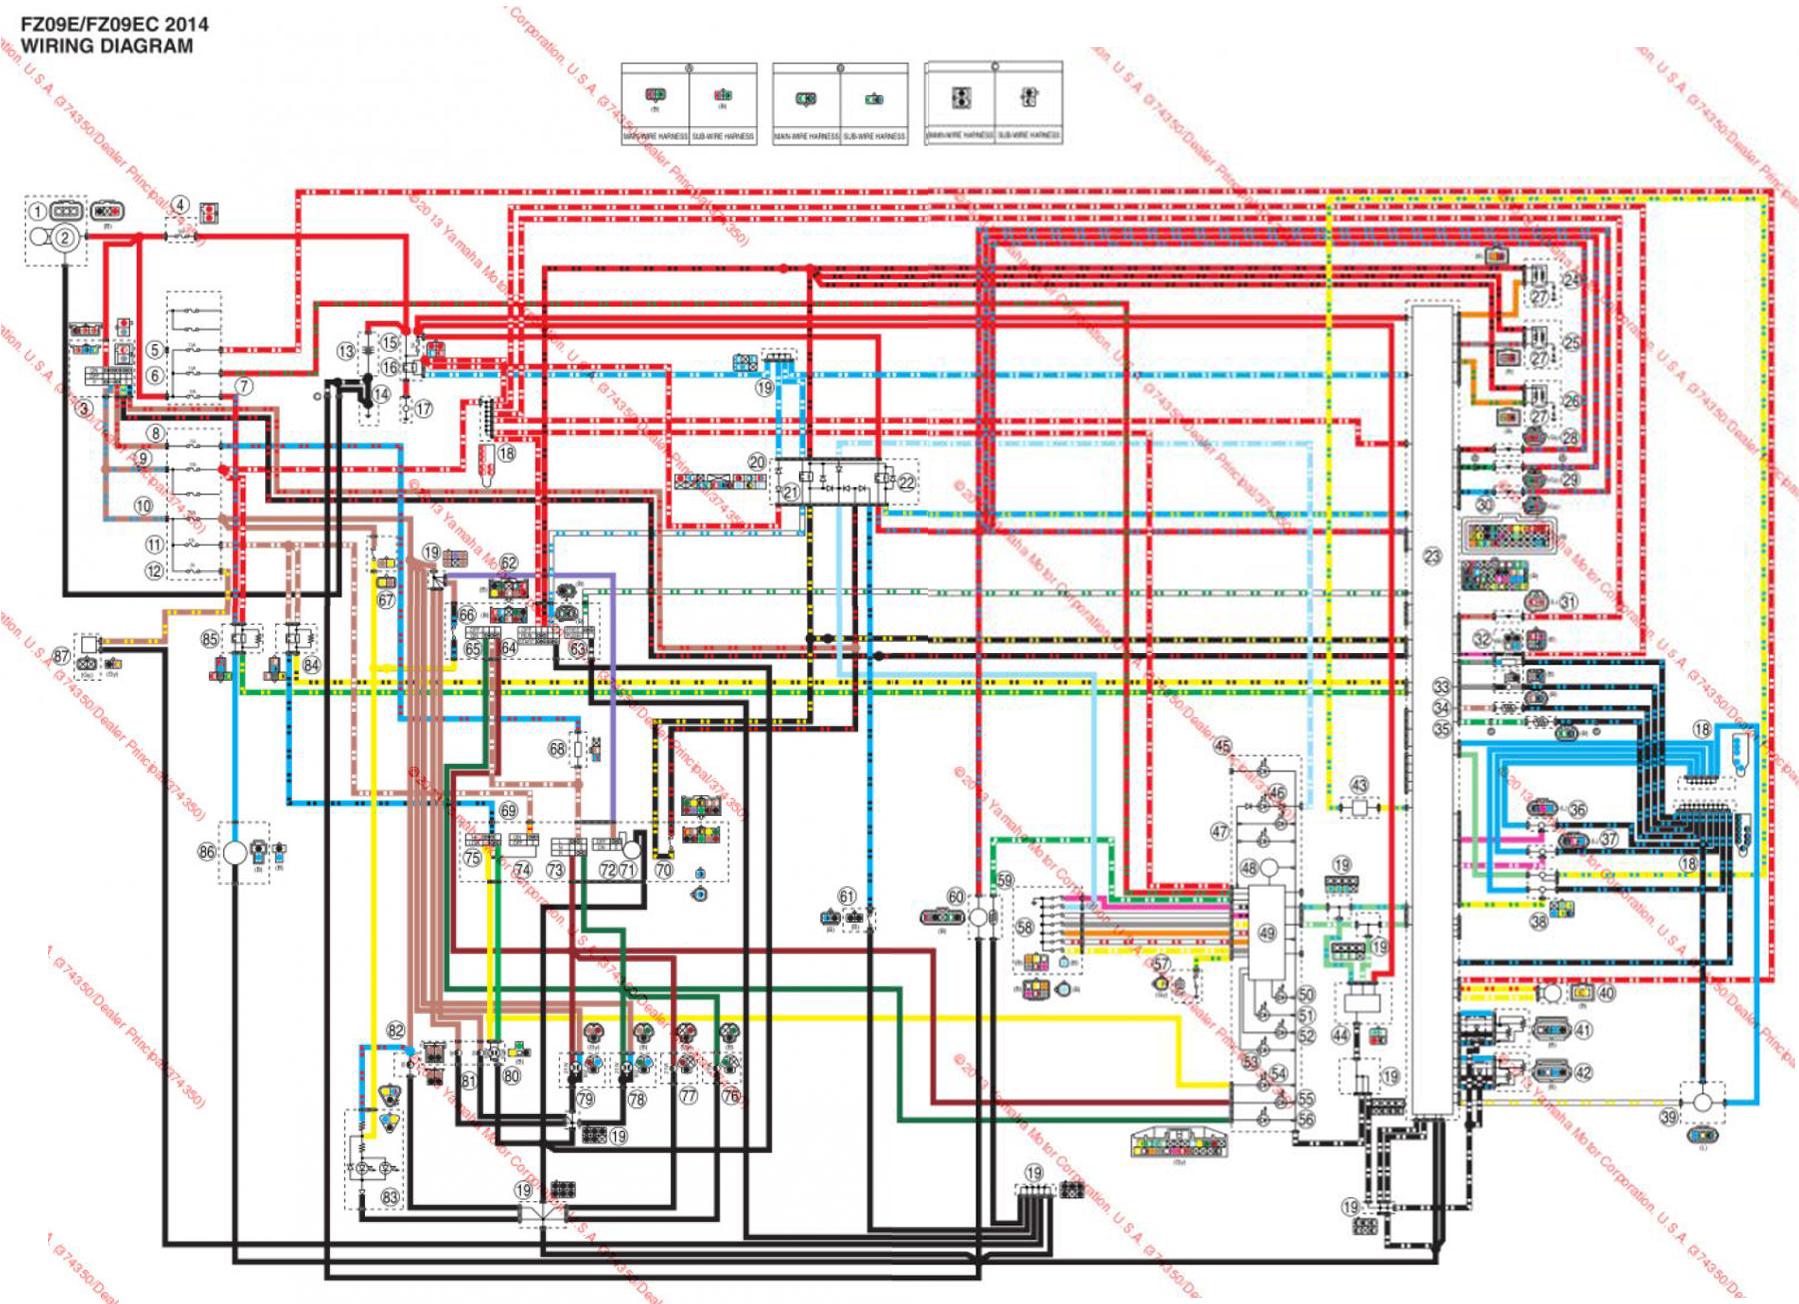 Wiring Diagram On 97 Cbr 600 Building 2009 Honda Cbr600rr Anyone Have A 2004